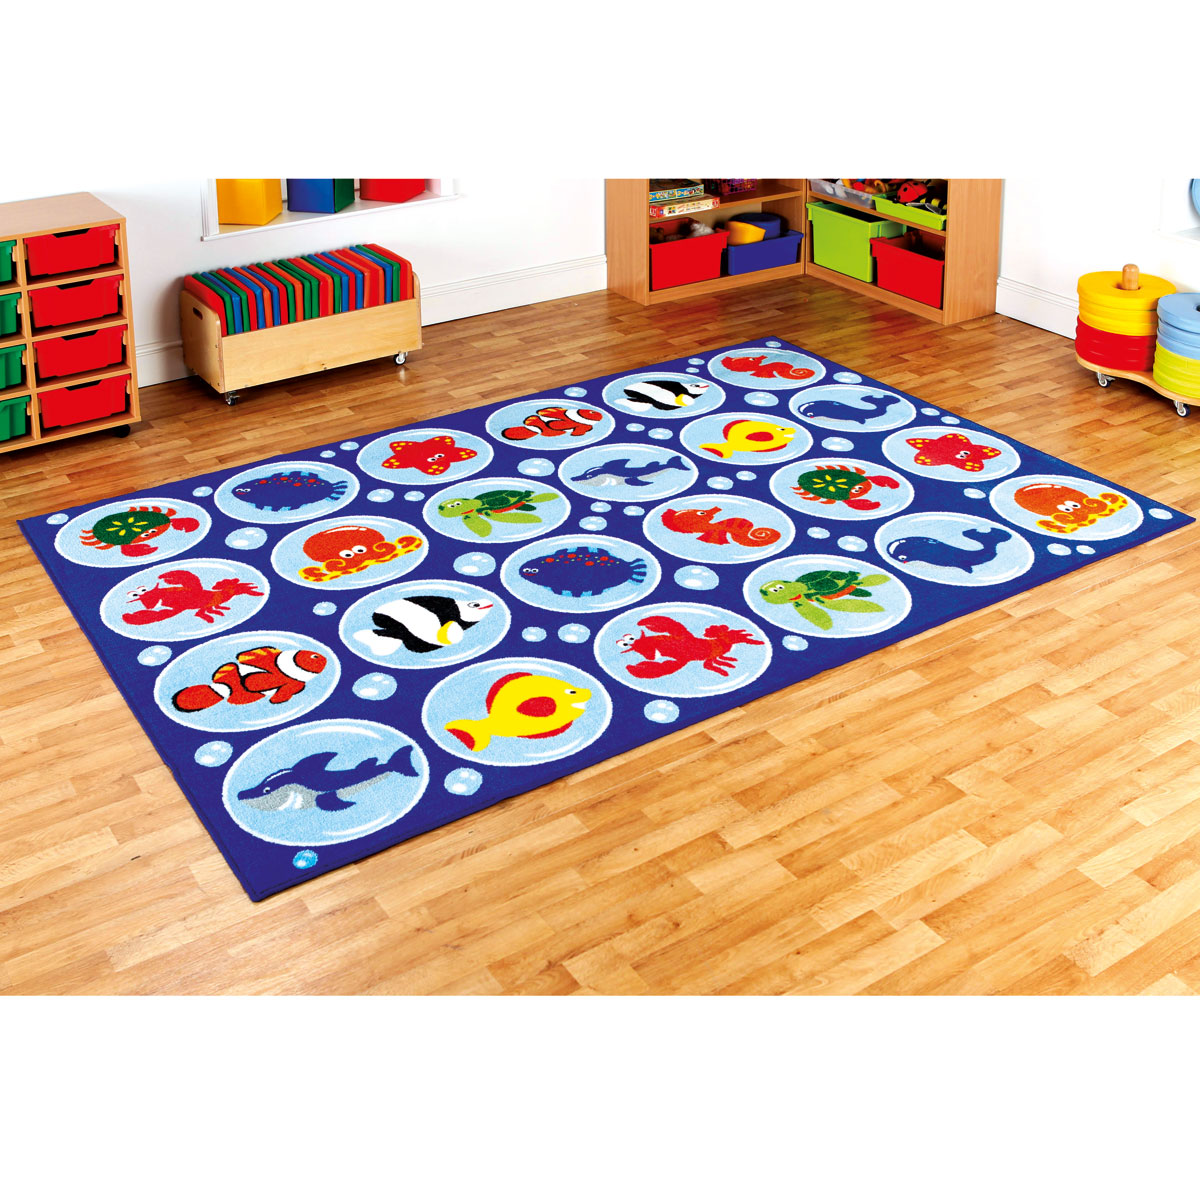 Carpets For Classrooms For Toddlers: Under The Sea Rectangular Placement Carpet